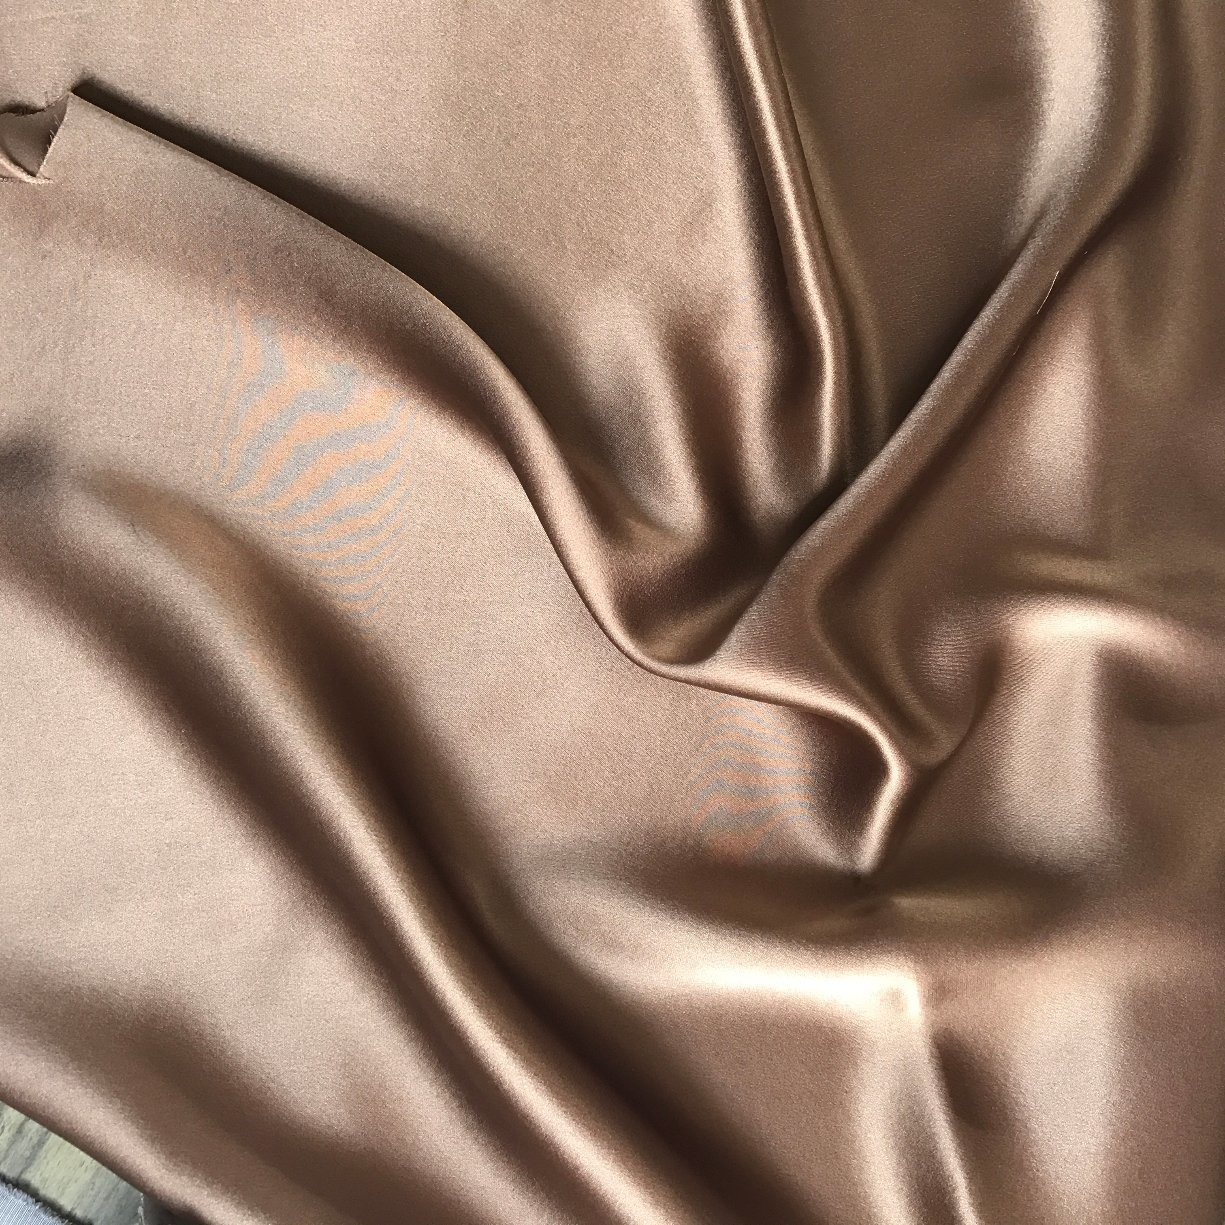 China New 19mm Silk Satin Fabric Silk Charmeuse Fabric Silk Fabric Silk Stretch Satin Fabric Silk Stretch Charmeuse Fabric China Silk Satin Fabrics And Silk Charmuse Price